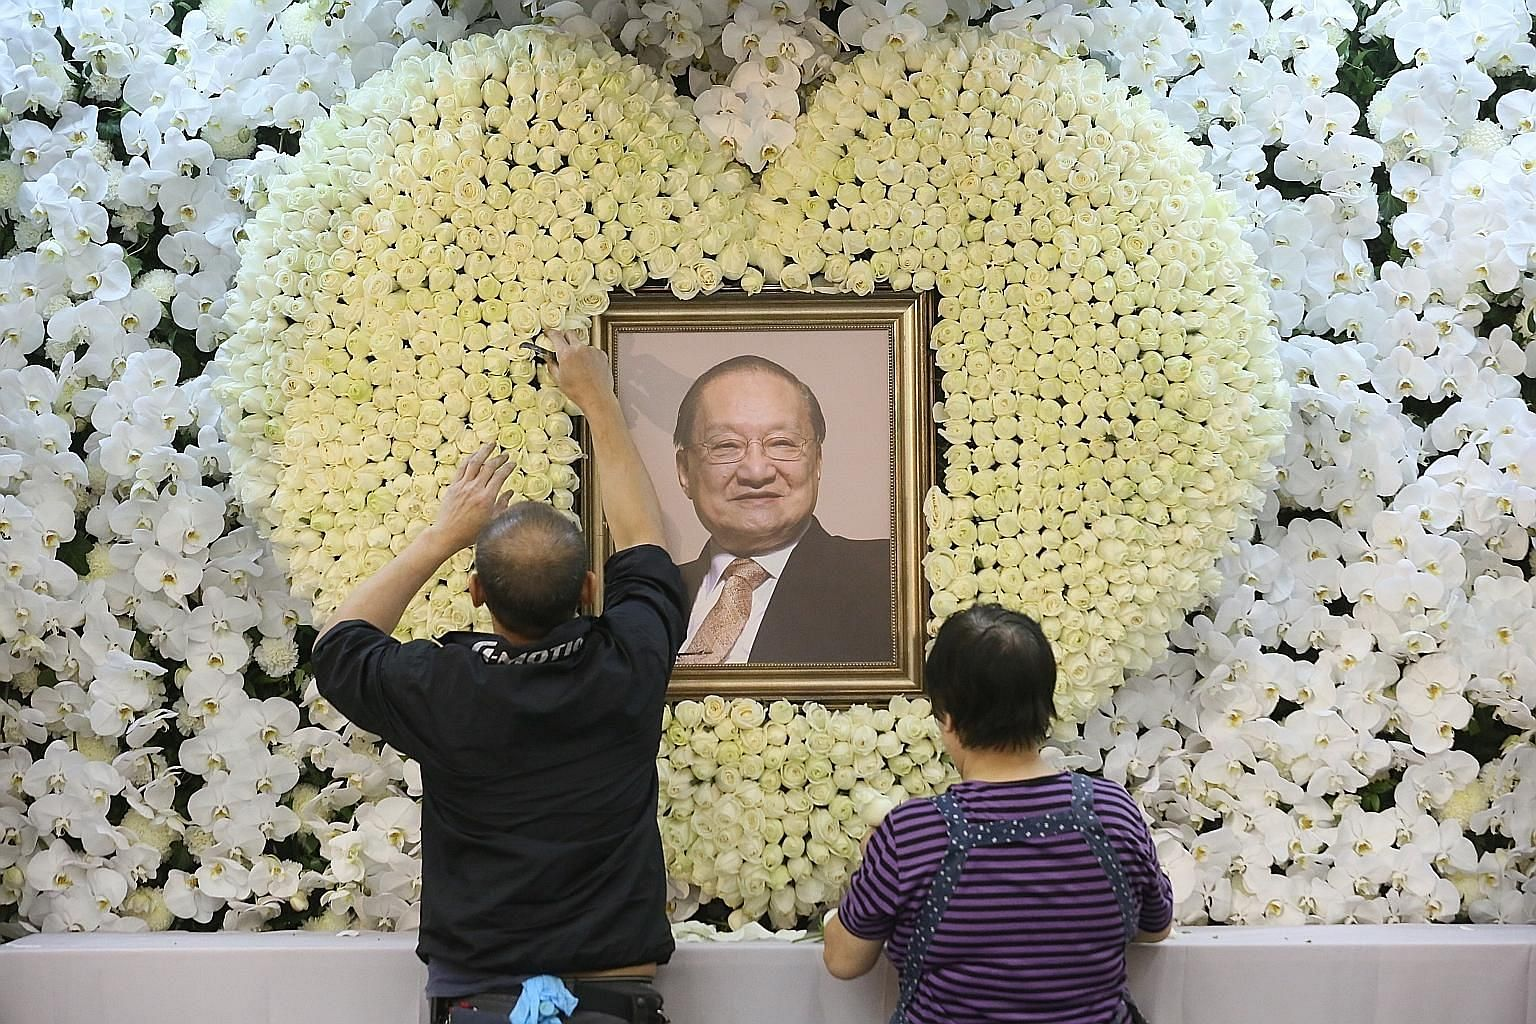 Mr Louis Cha Leung Yung, better known by his pen name, Jin Yong, died in Hong Kong on Oct 30 at the age of 94. Leading figures from the arts, business and political worlds attended his wake, while those who sent wreaths included Chinese President Xi